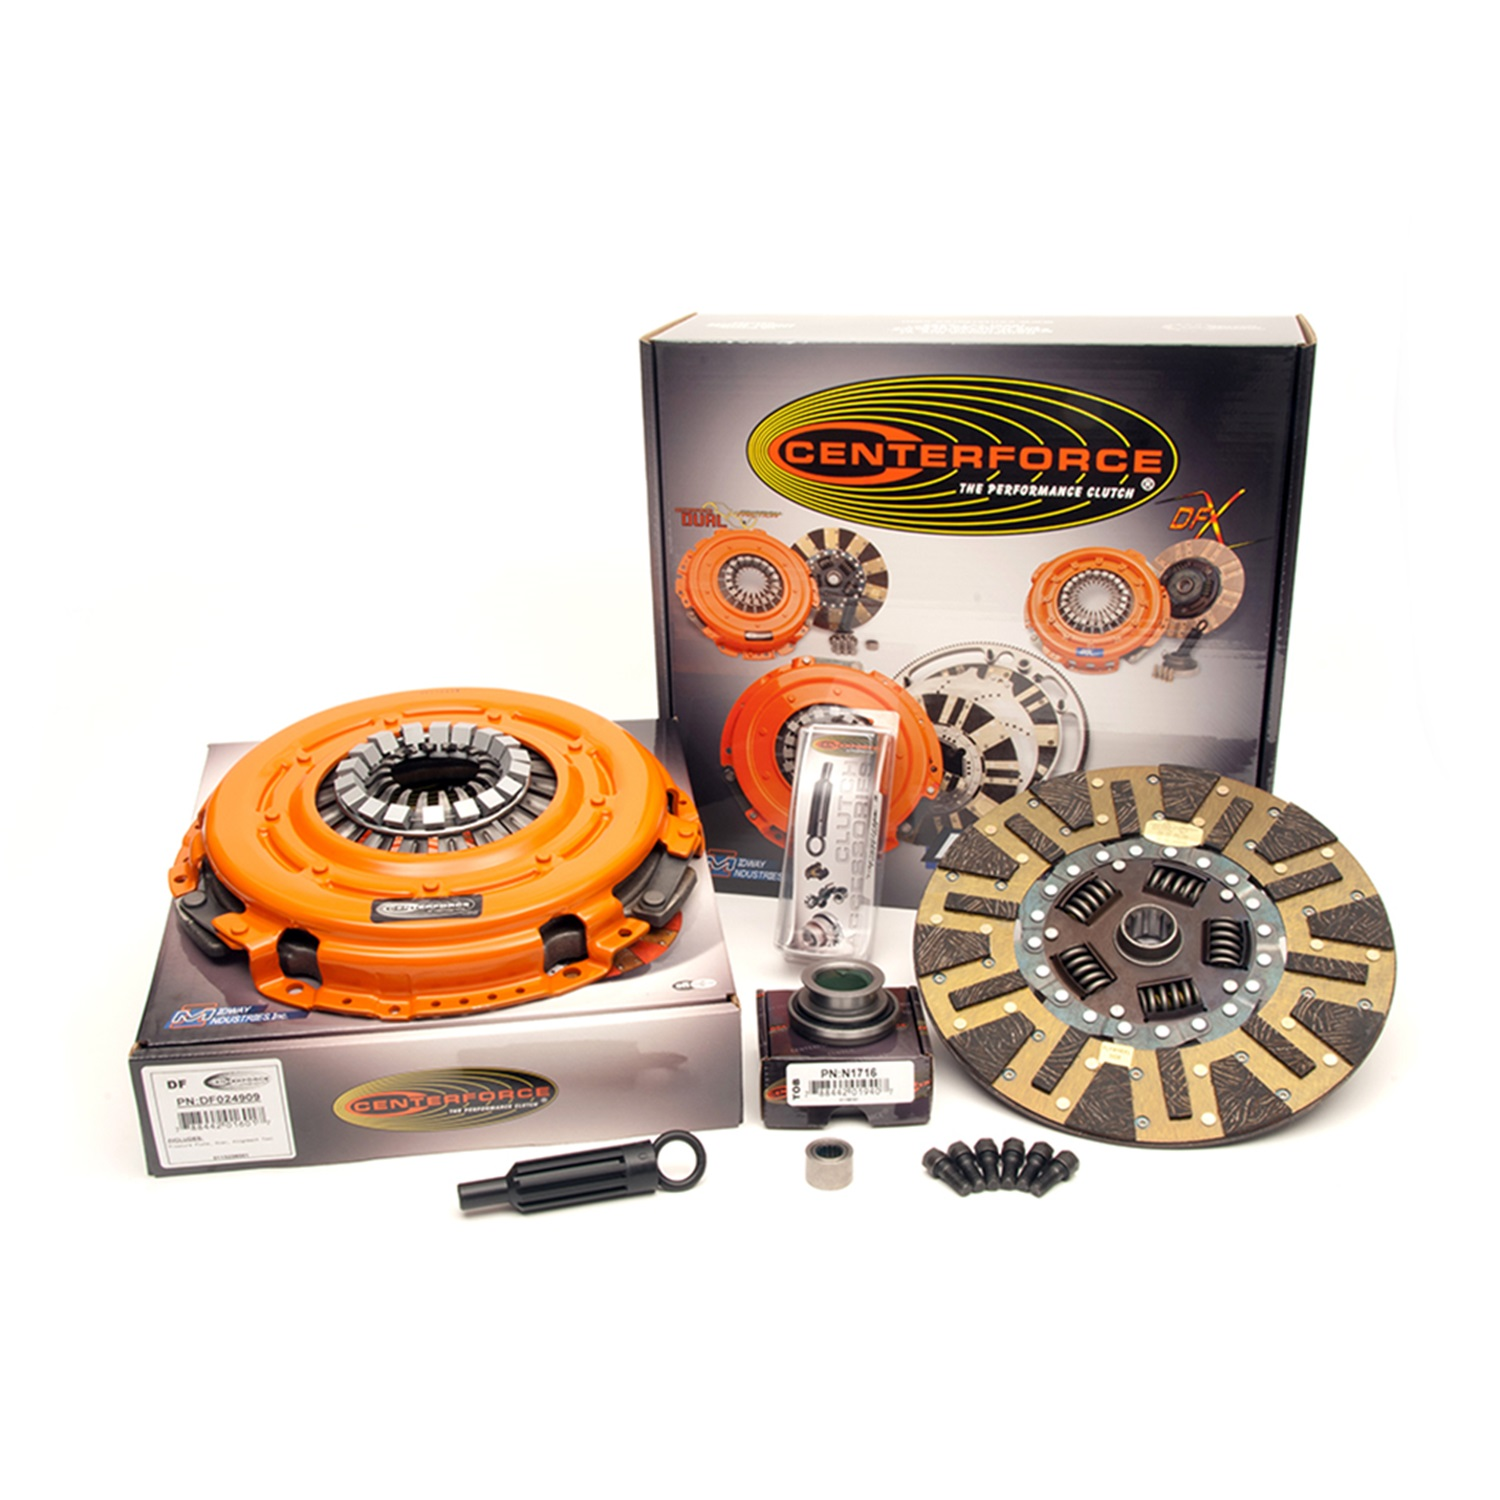 Centerforce KDF240916 Dual Friction Clutch Pressure Plate And Disc Set; Size 12 in.; 10 Spline By 1 1/8 in.; Incl. Pressure Plate/Clutch Disc; Does Not Incl. T.O.B;